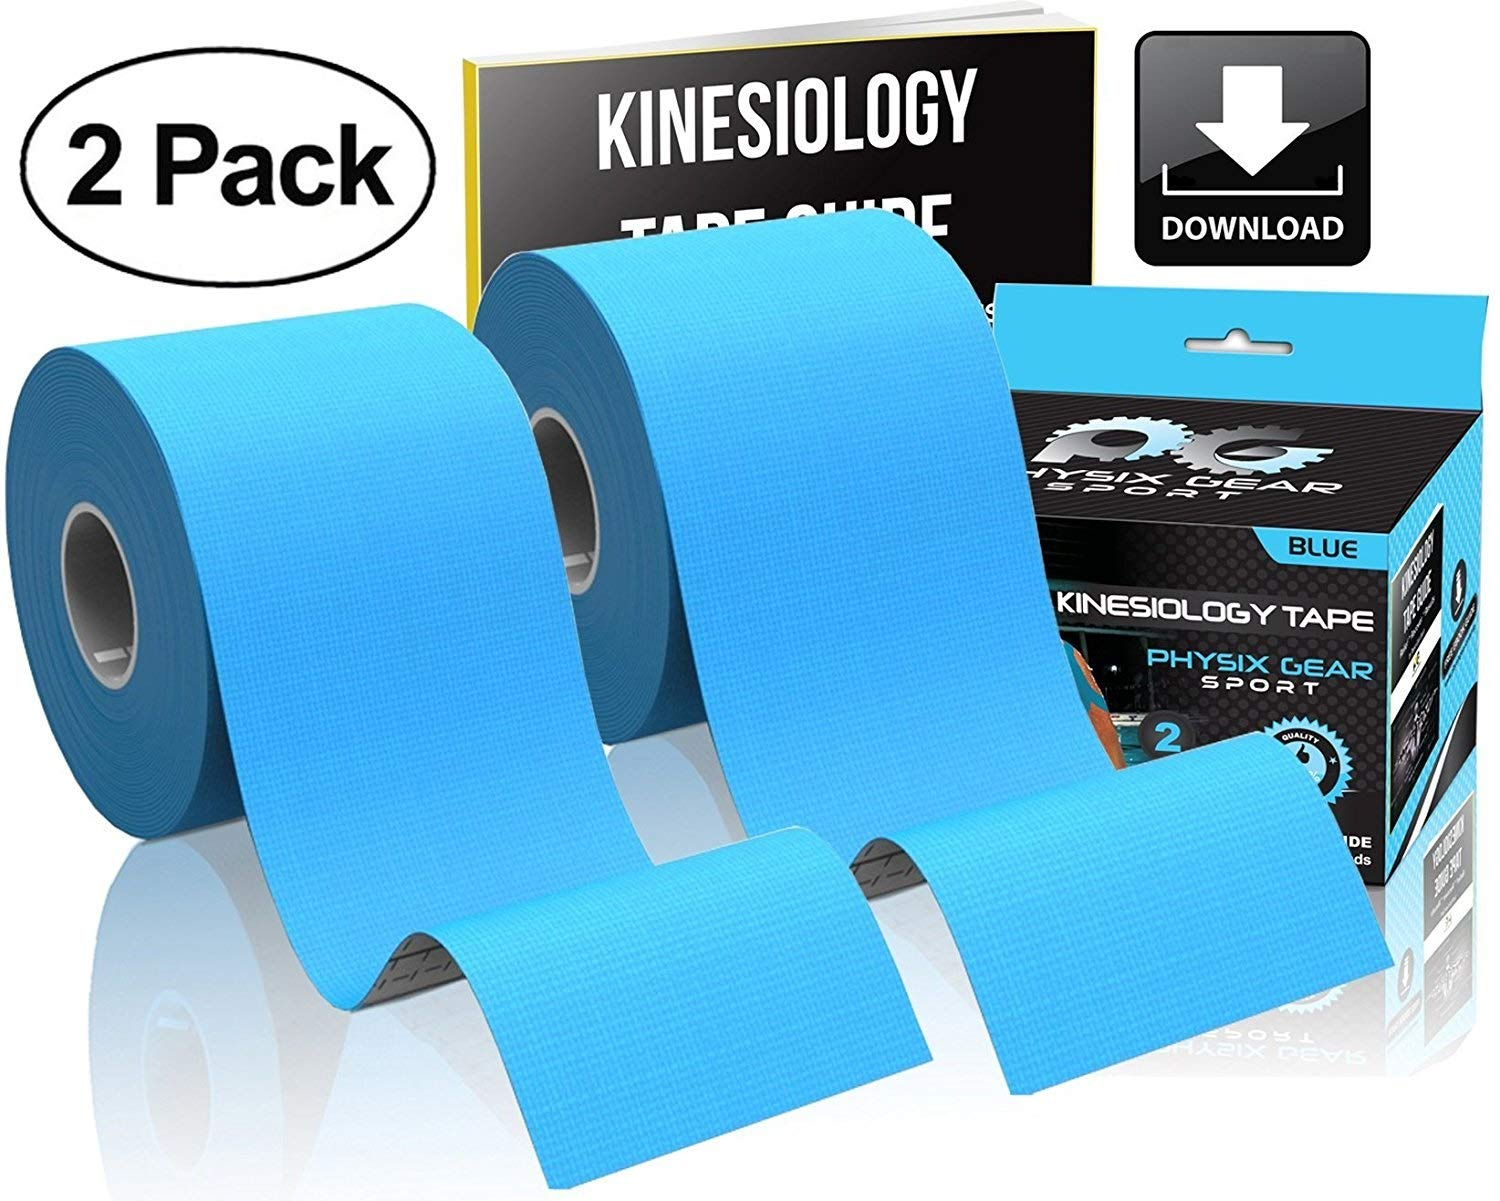 Physix Gear Sport Kinesiology Tape - Free Illustrated E-Guide - 16ft Uncut Roll - Best Pain Relief Adhesive for Muscles, Shin Splints Knee & Shoulder - 24/7 Waterproof Therapeutic Aid (2PK BLU) by Physix Gear Sport (Image #3)